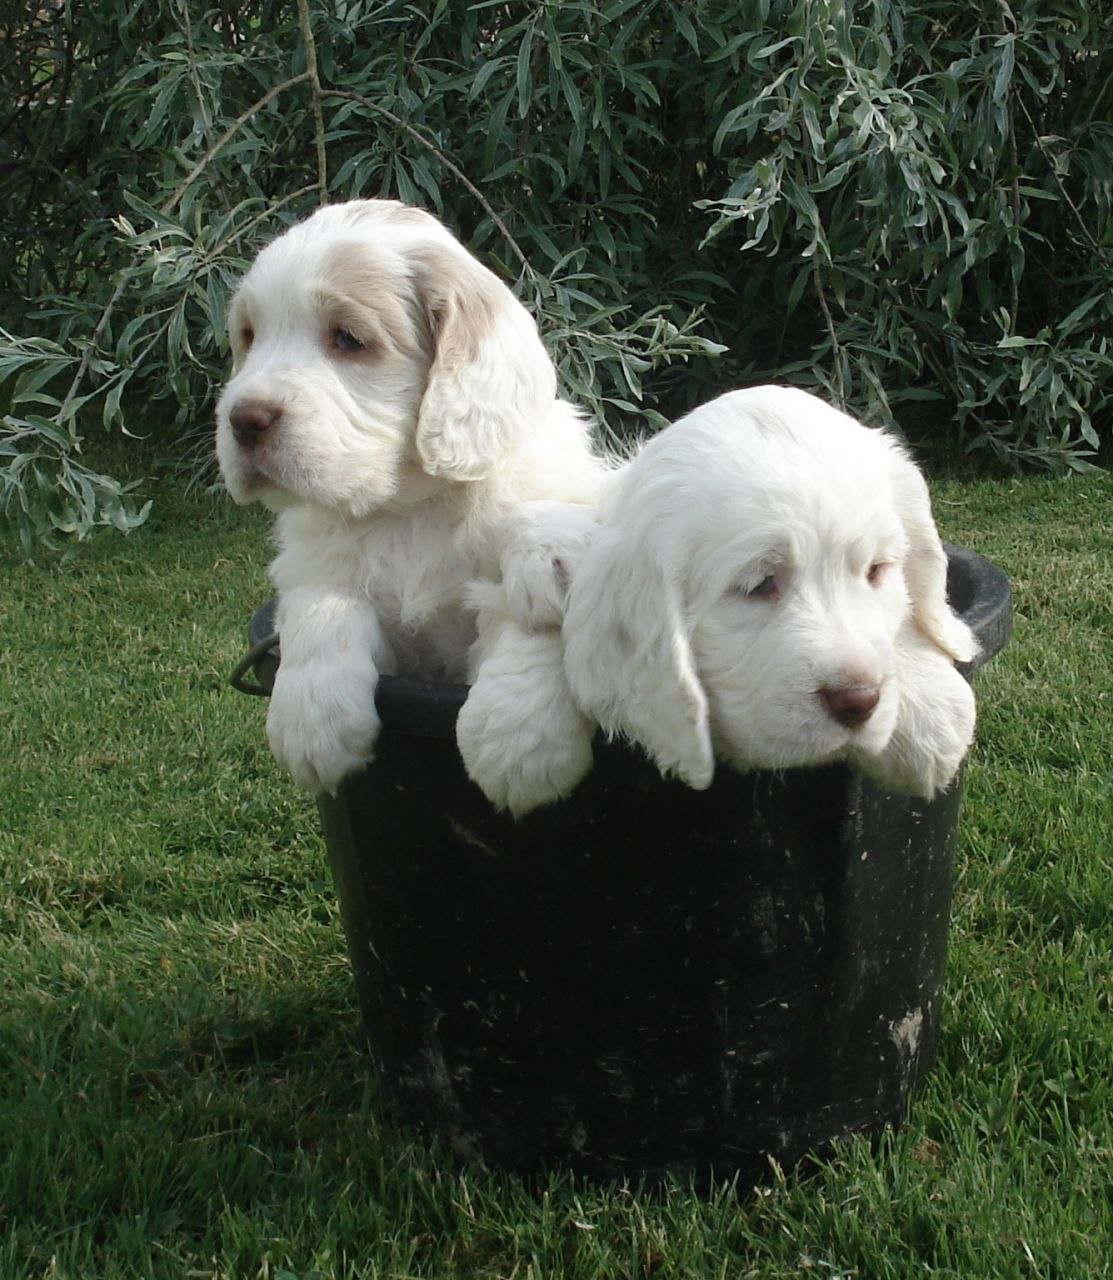 Clumber Spaniel Puppies Clumber Spaniel Clumber Puppies For Sale Breed Clumber Spaniel Puppy Clumber Spaniel Cute Cats And Dogs